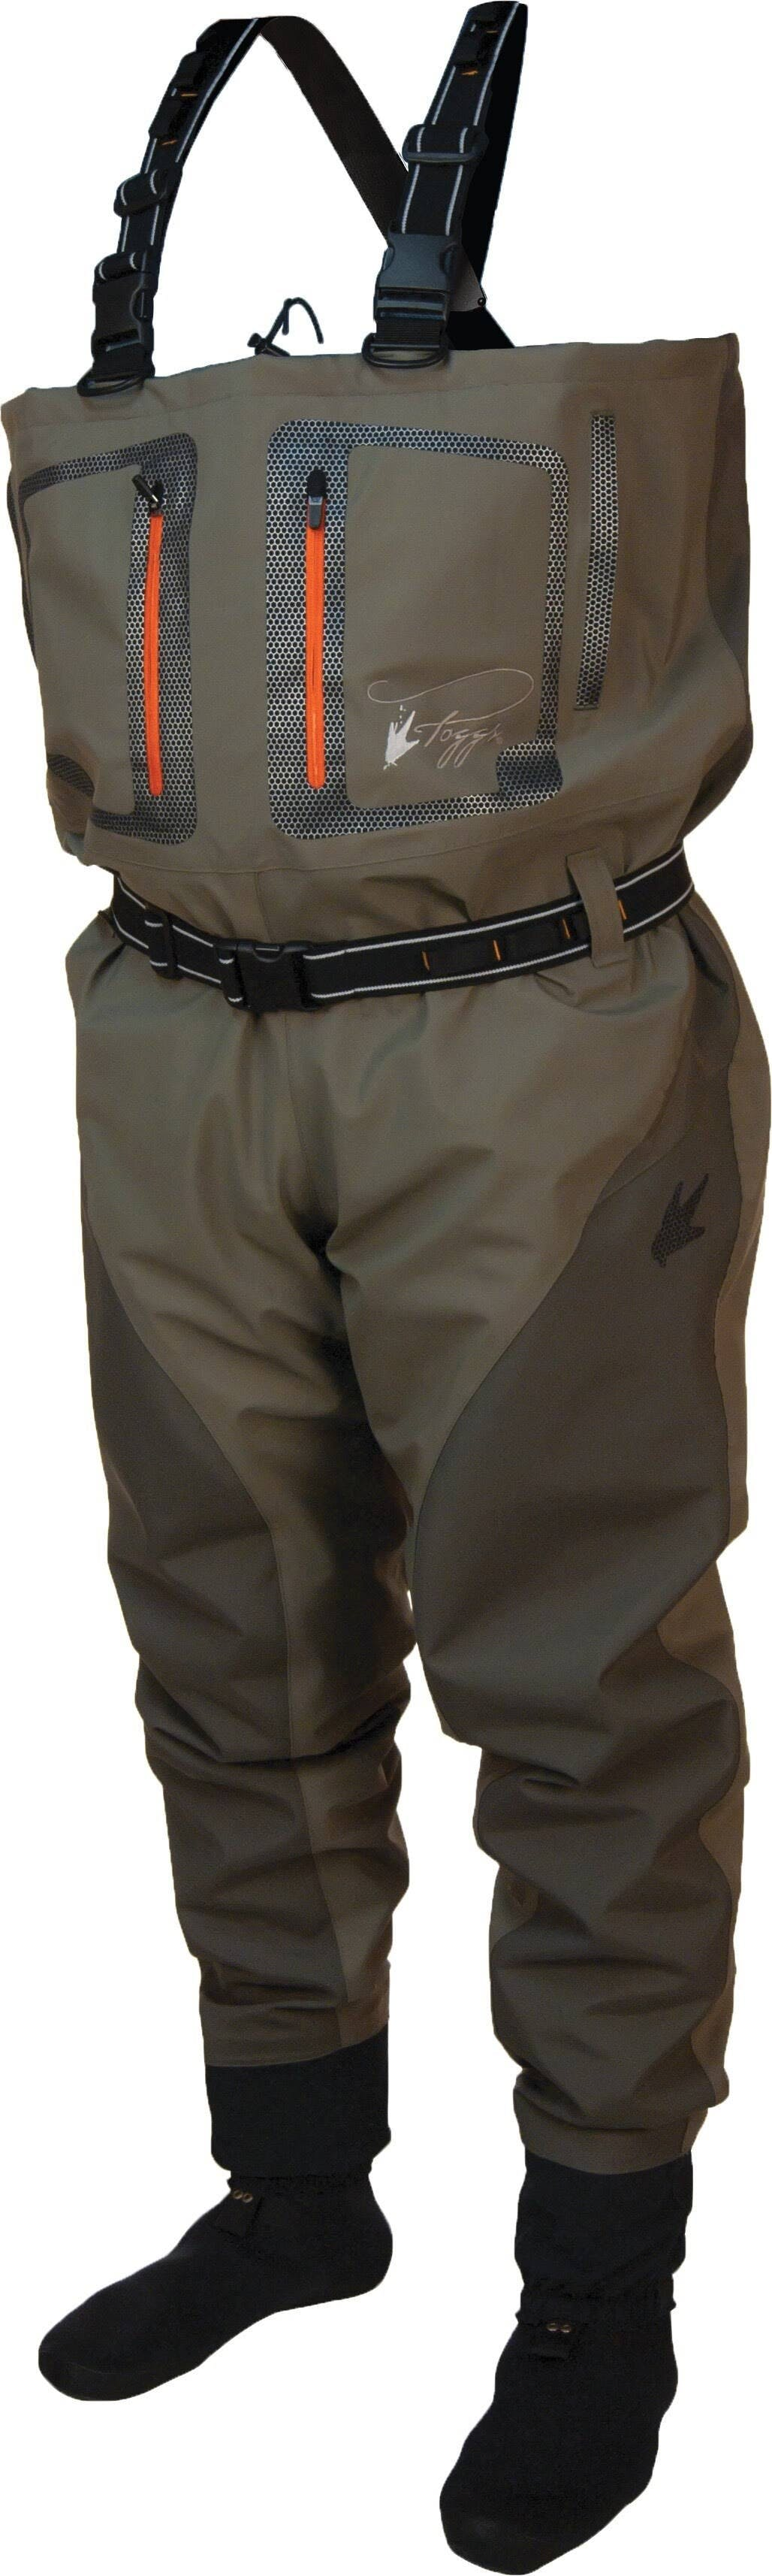 Frogg Toggs Pilot II Breathable STFT Medium 2711160-M